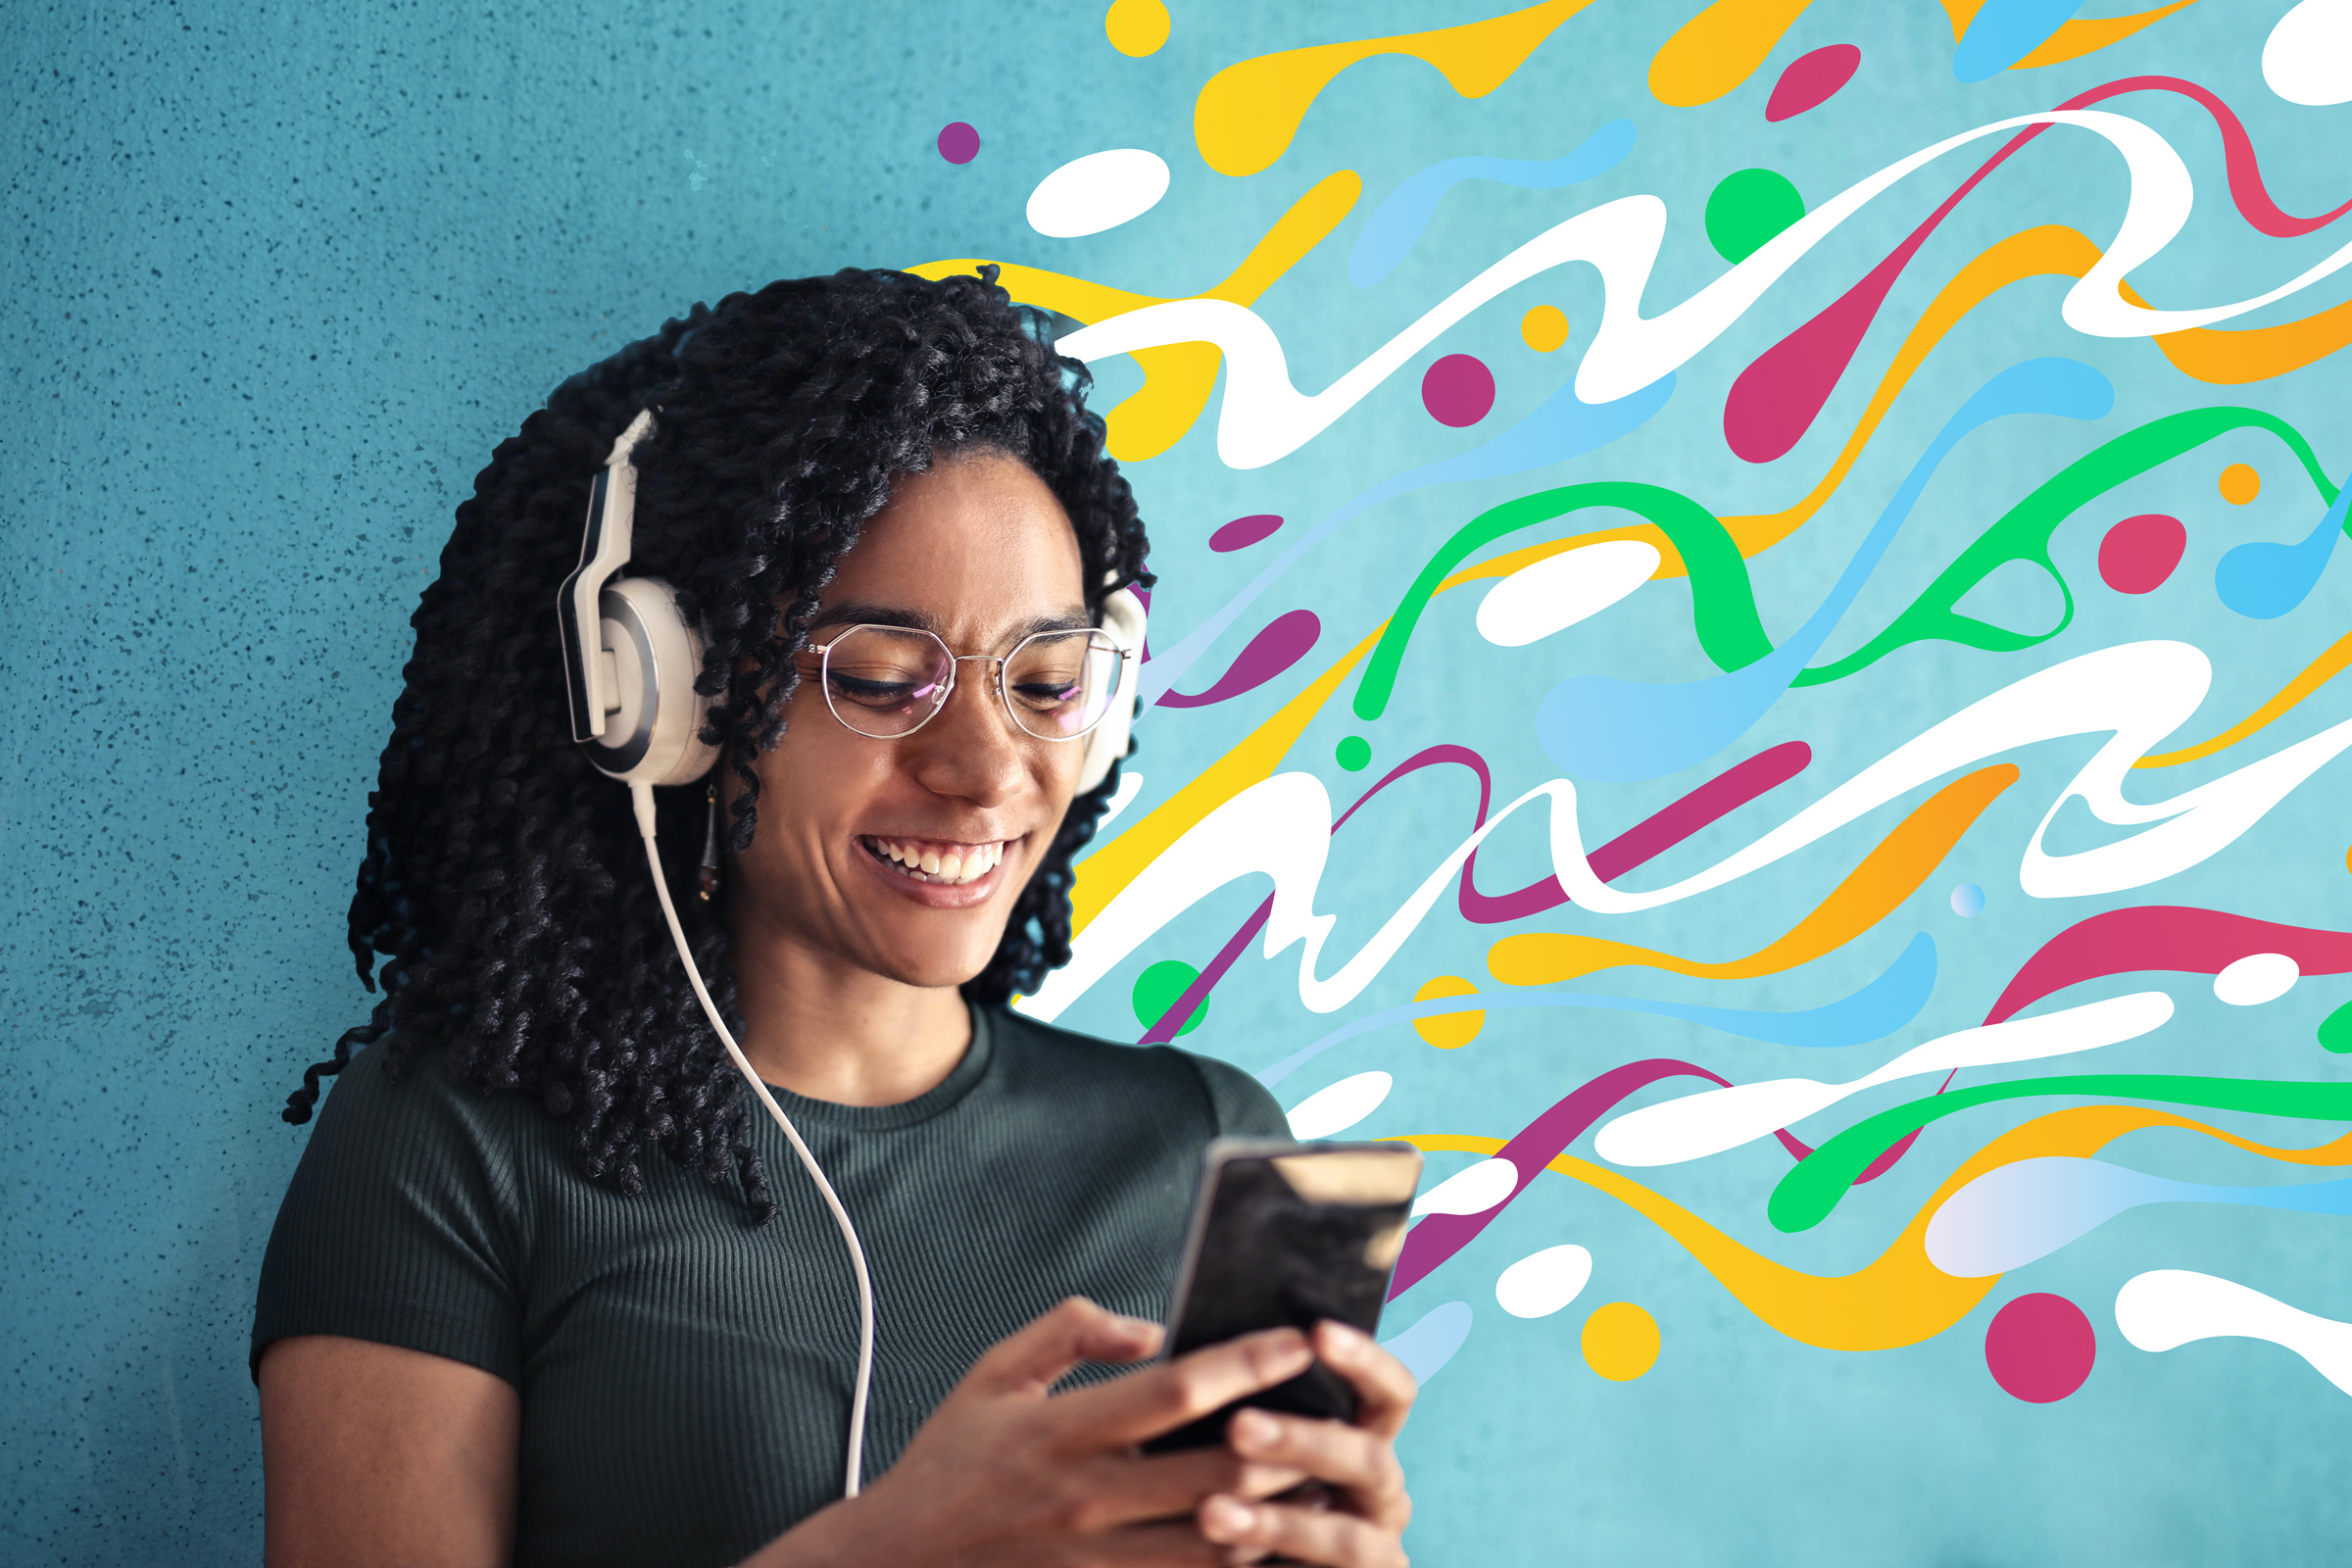 A Black woman with curly hair and glasses smiles at her phone with over the year headphones on.